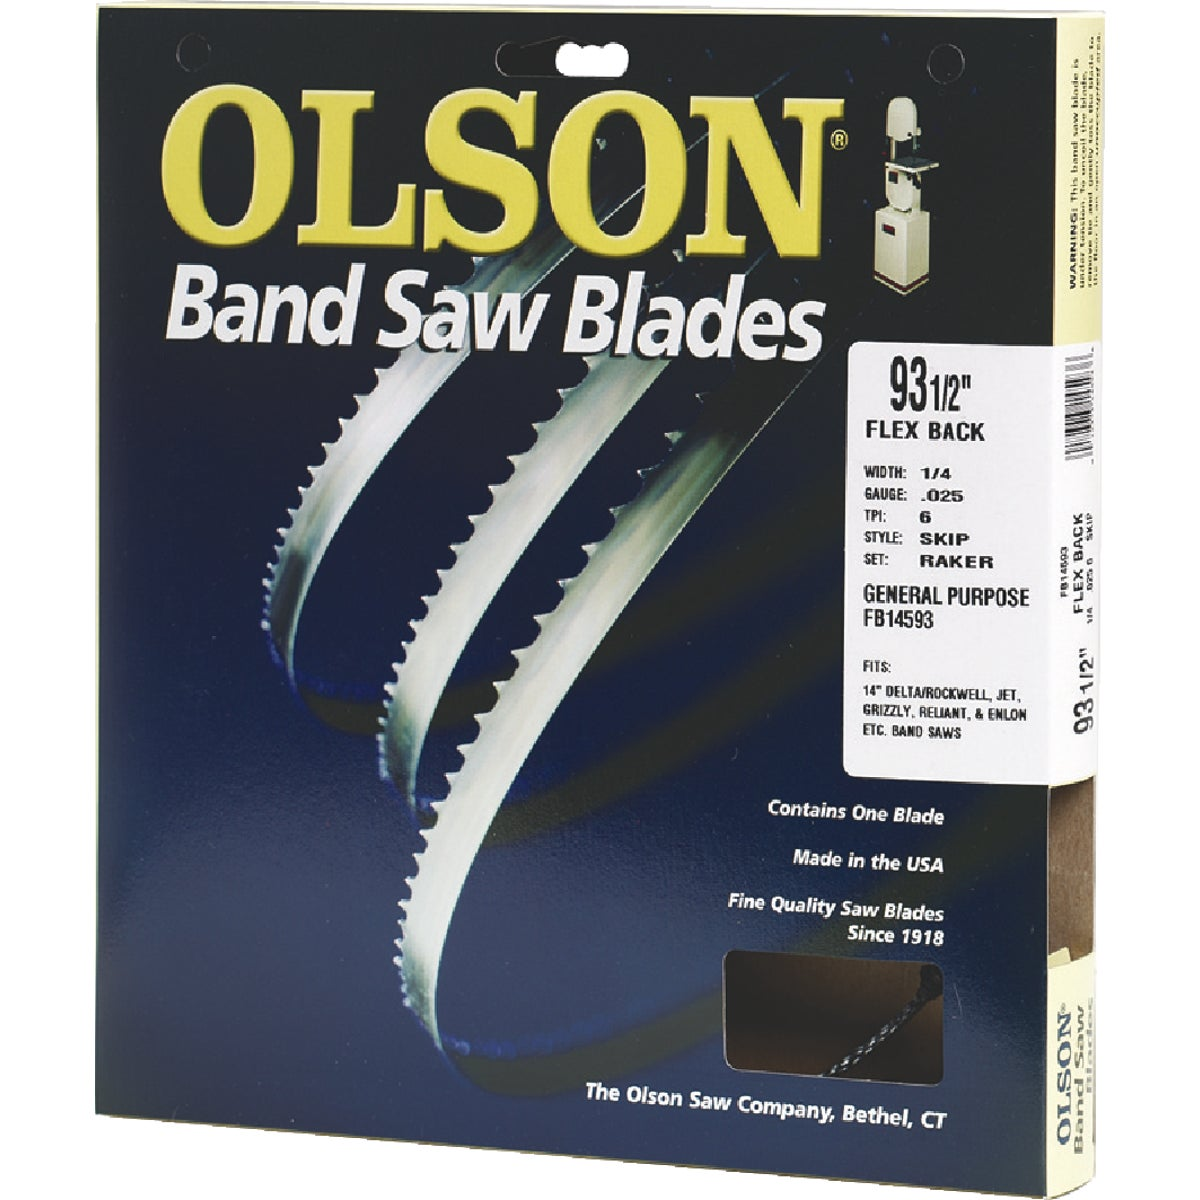 "93-1/2"" BANDSAW BLADE - 08593 by Olson Saw Co"